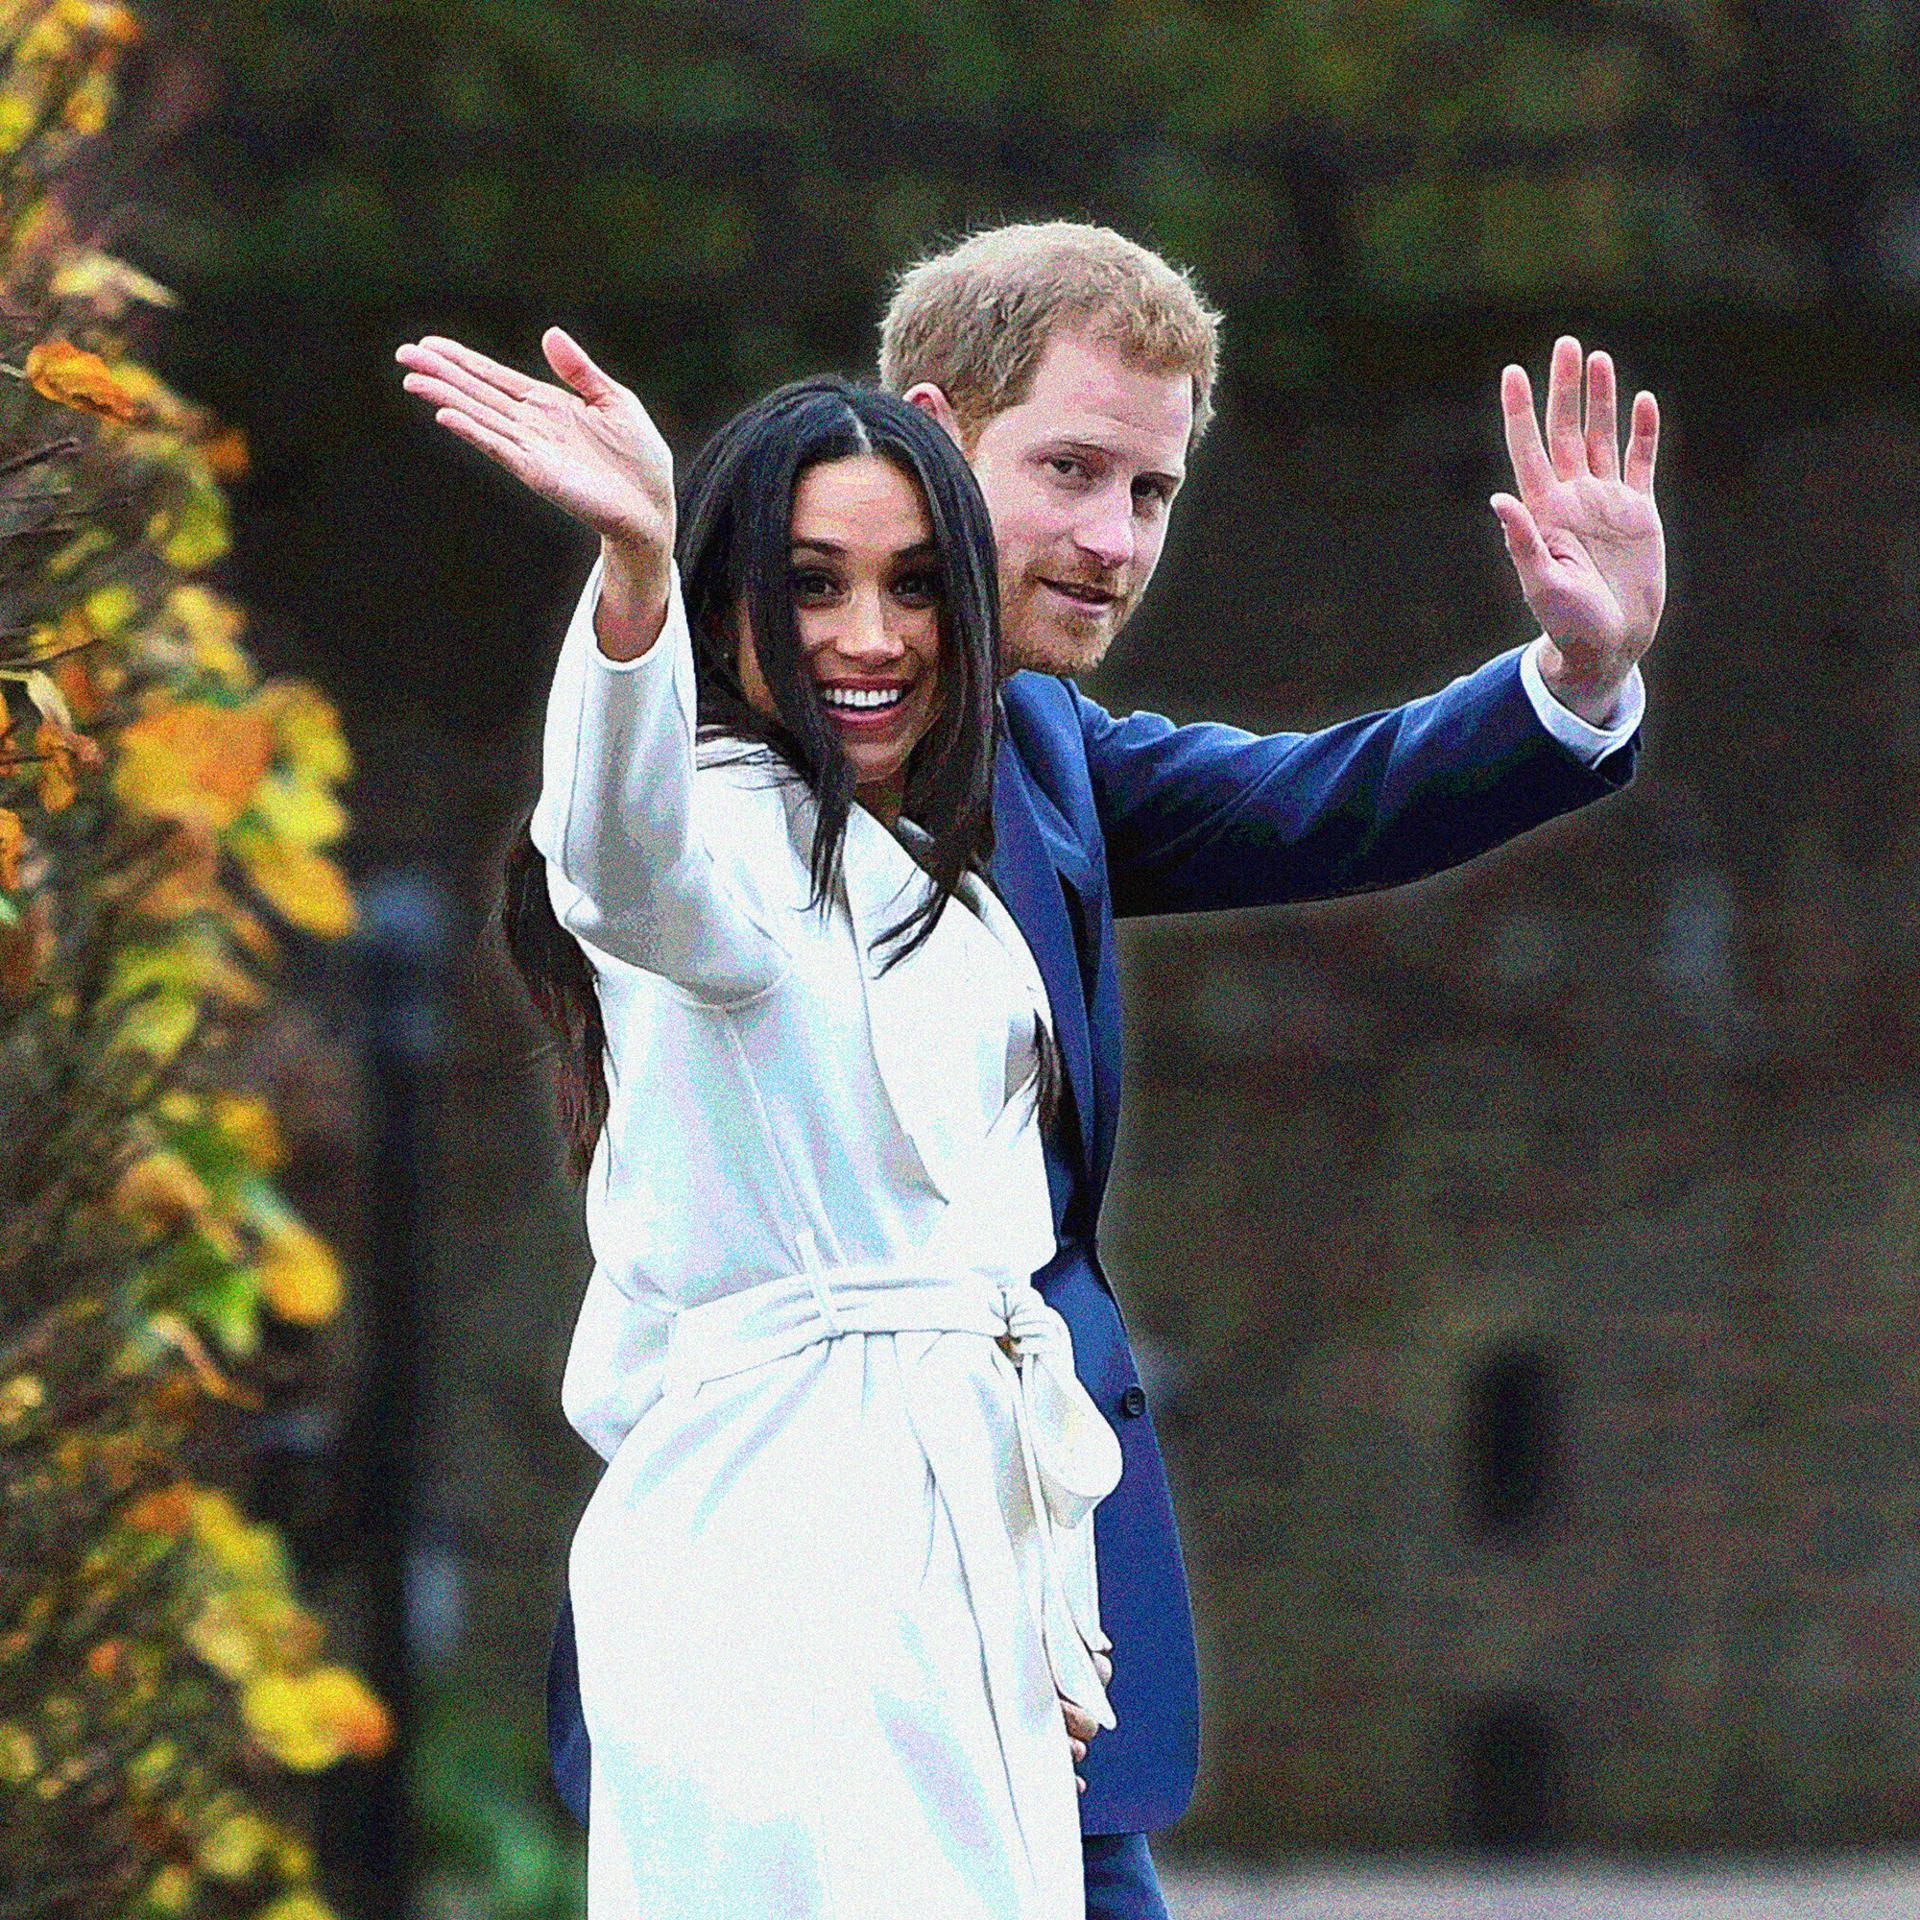 hero-last-Prince-Harry-and-Meghan-Markle2-by-Steve-Back-Getty-Images